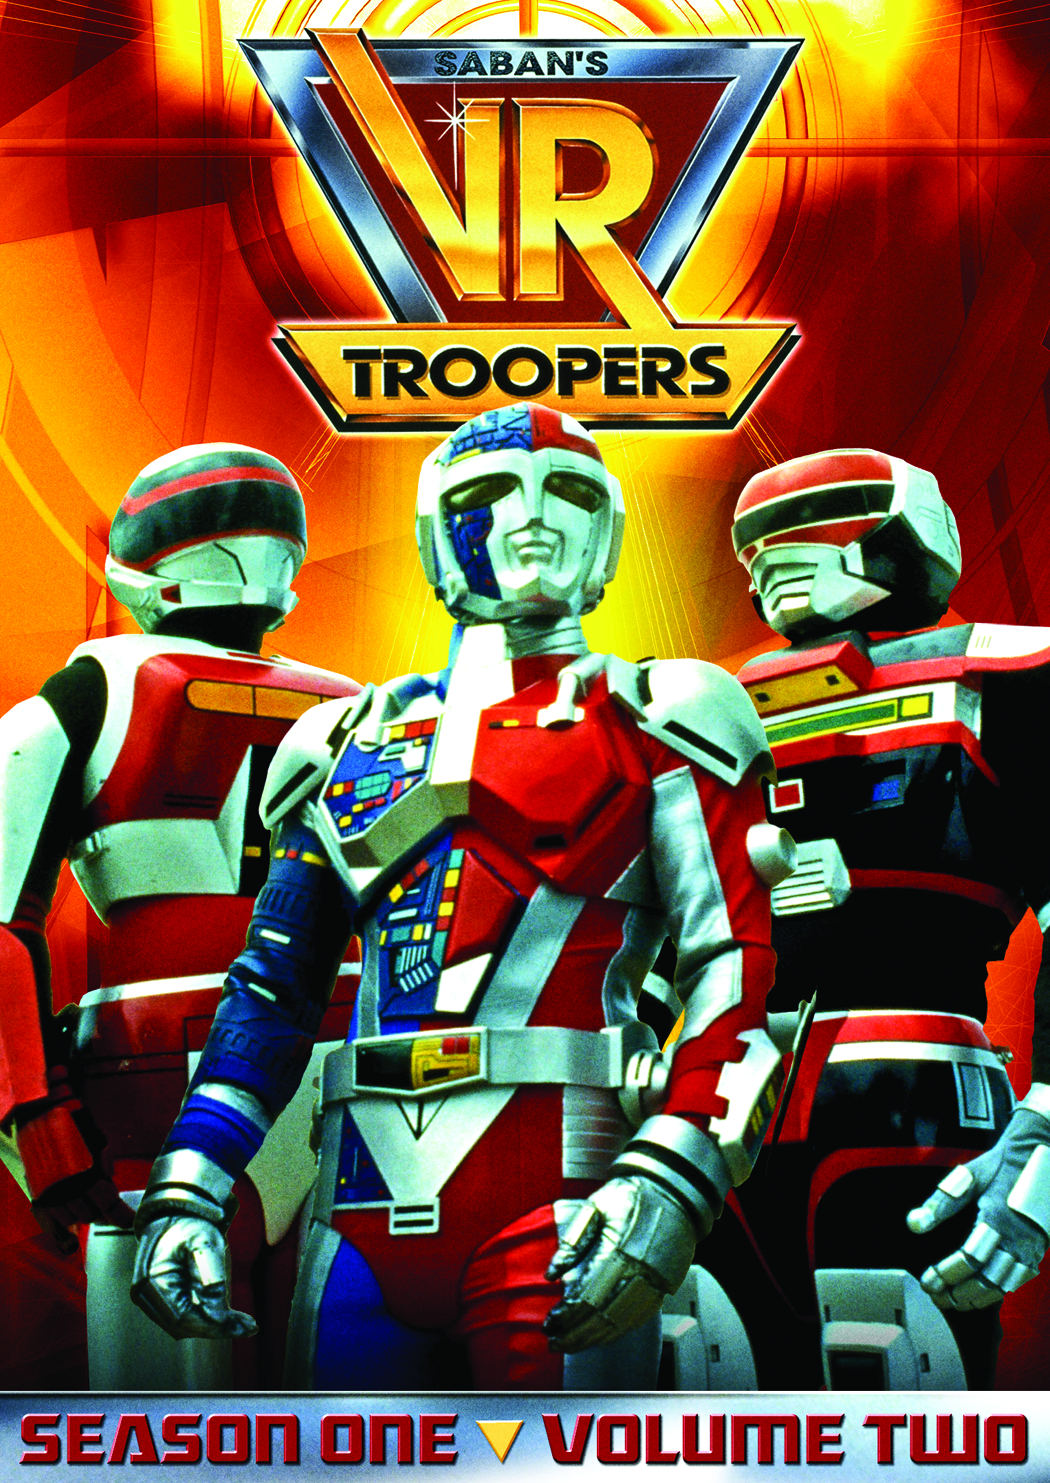 VR TROOPERS DVD SEA 01 VOL 2